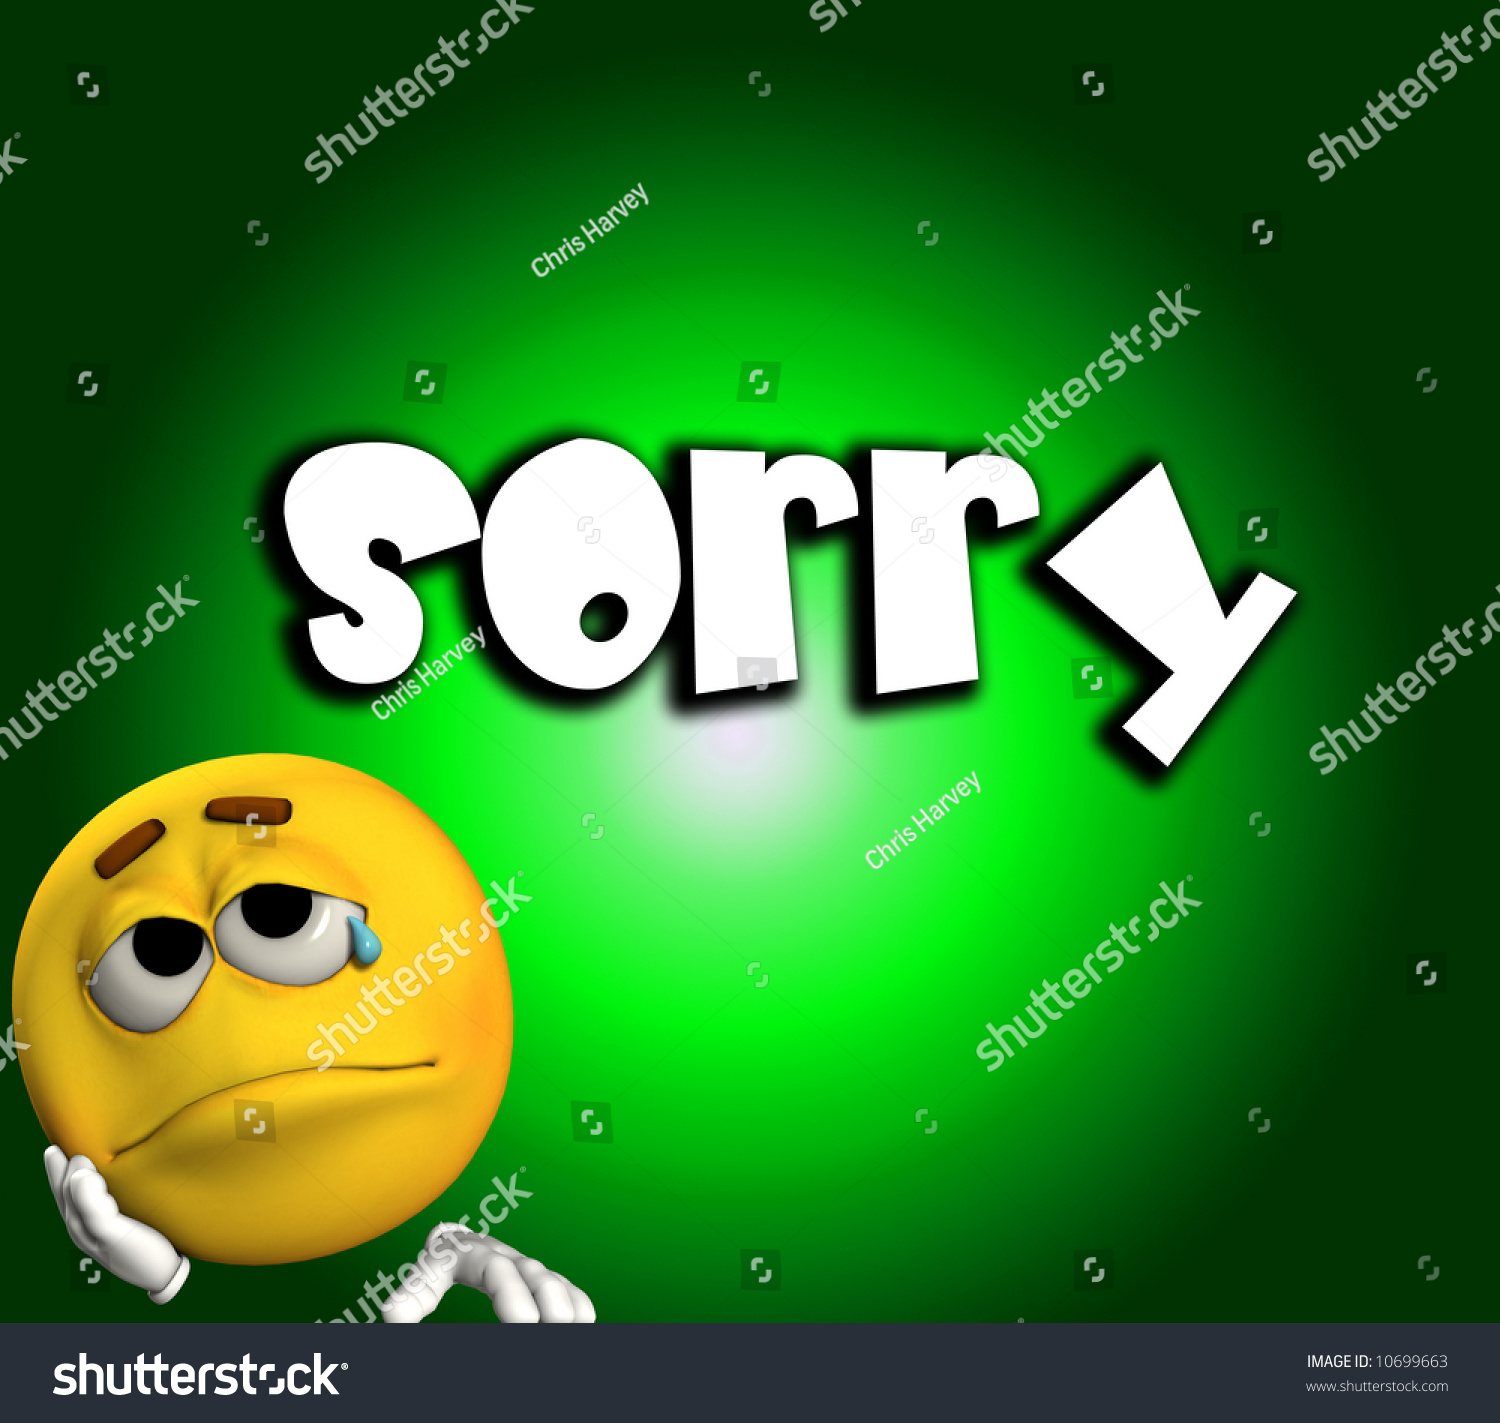 Sad Sorry Images: Conceptual Image Cartoon Face That Very Stock Illustration